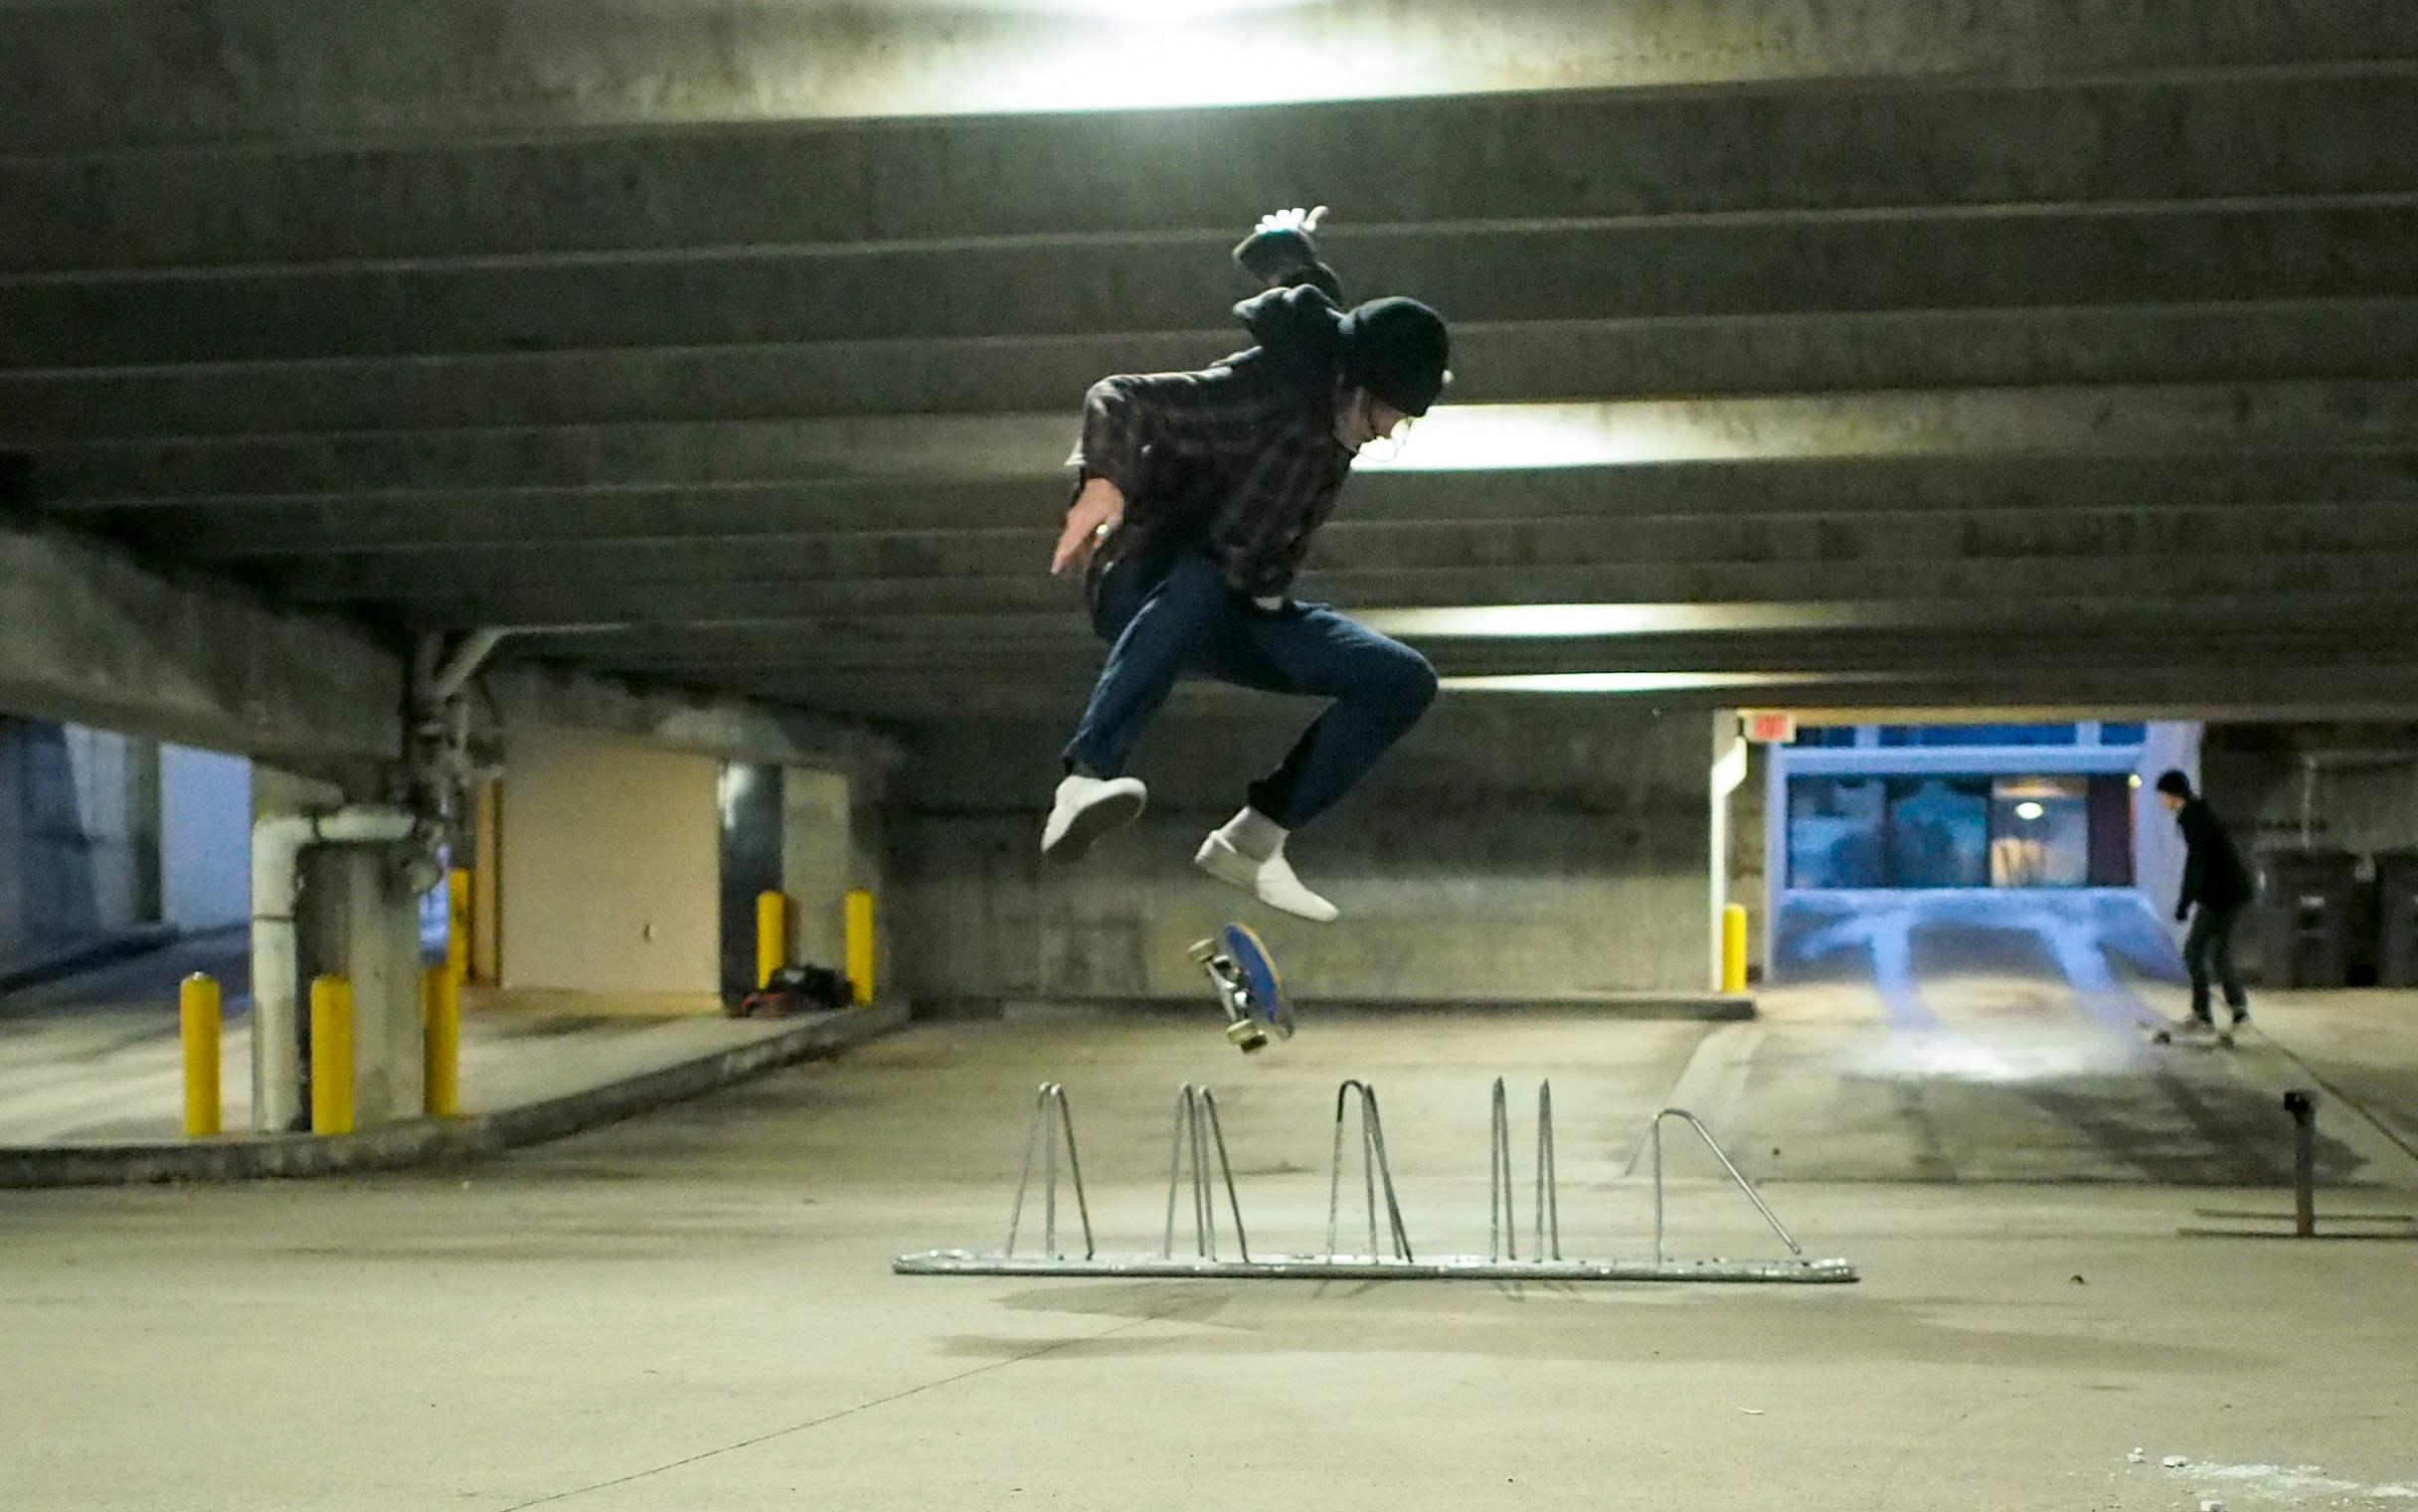 A Skateboarder Kickflips Over Bike Rack Inside Chilly Underground Parking Garage With Patches Of Ice And Snow On The Ground Photo Zachariah Hughes